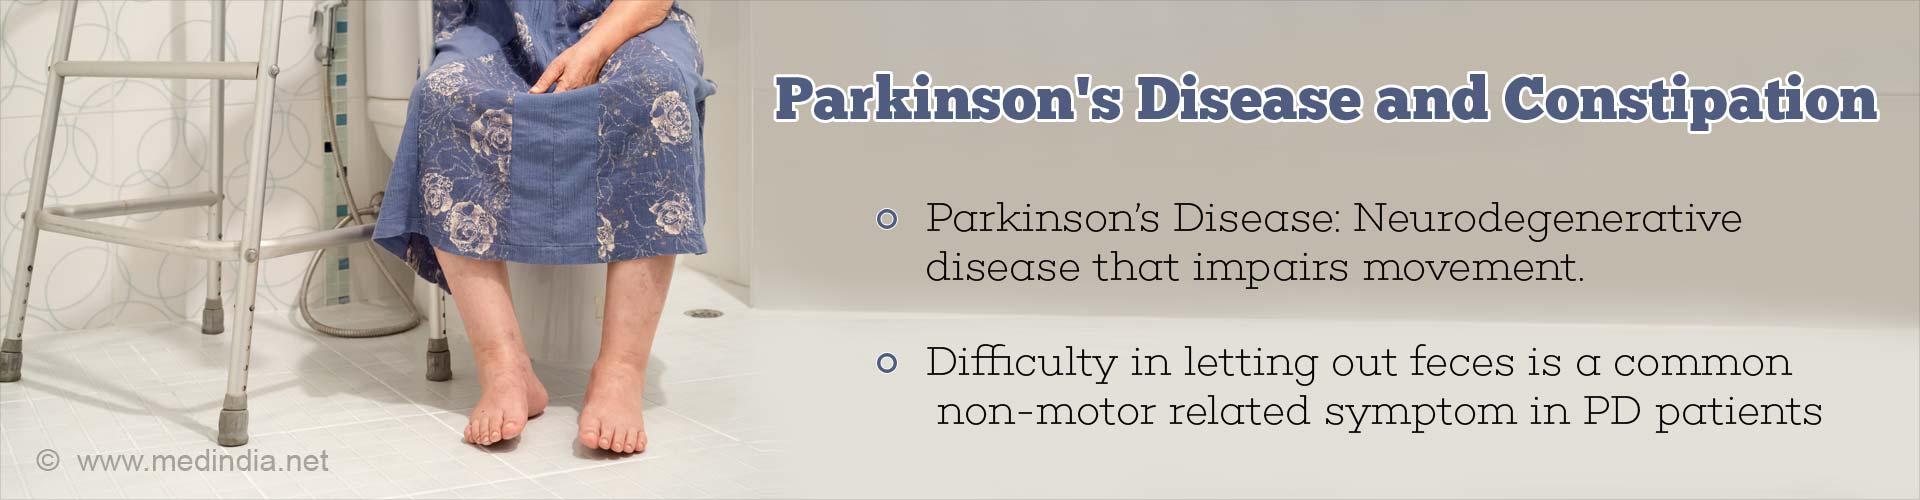 Parkinson's Disease Associated With Gastrointestinal Dysfunction